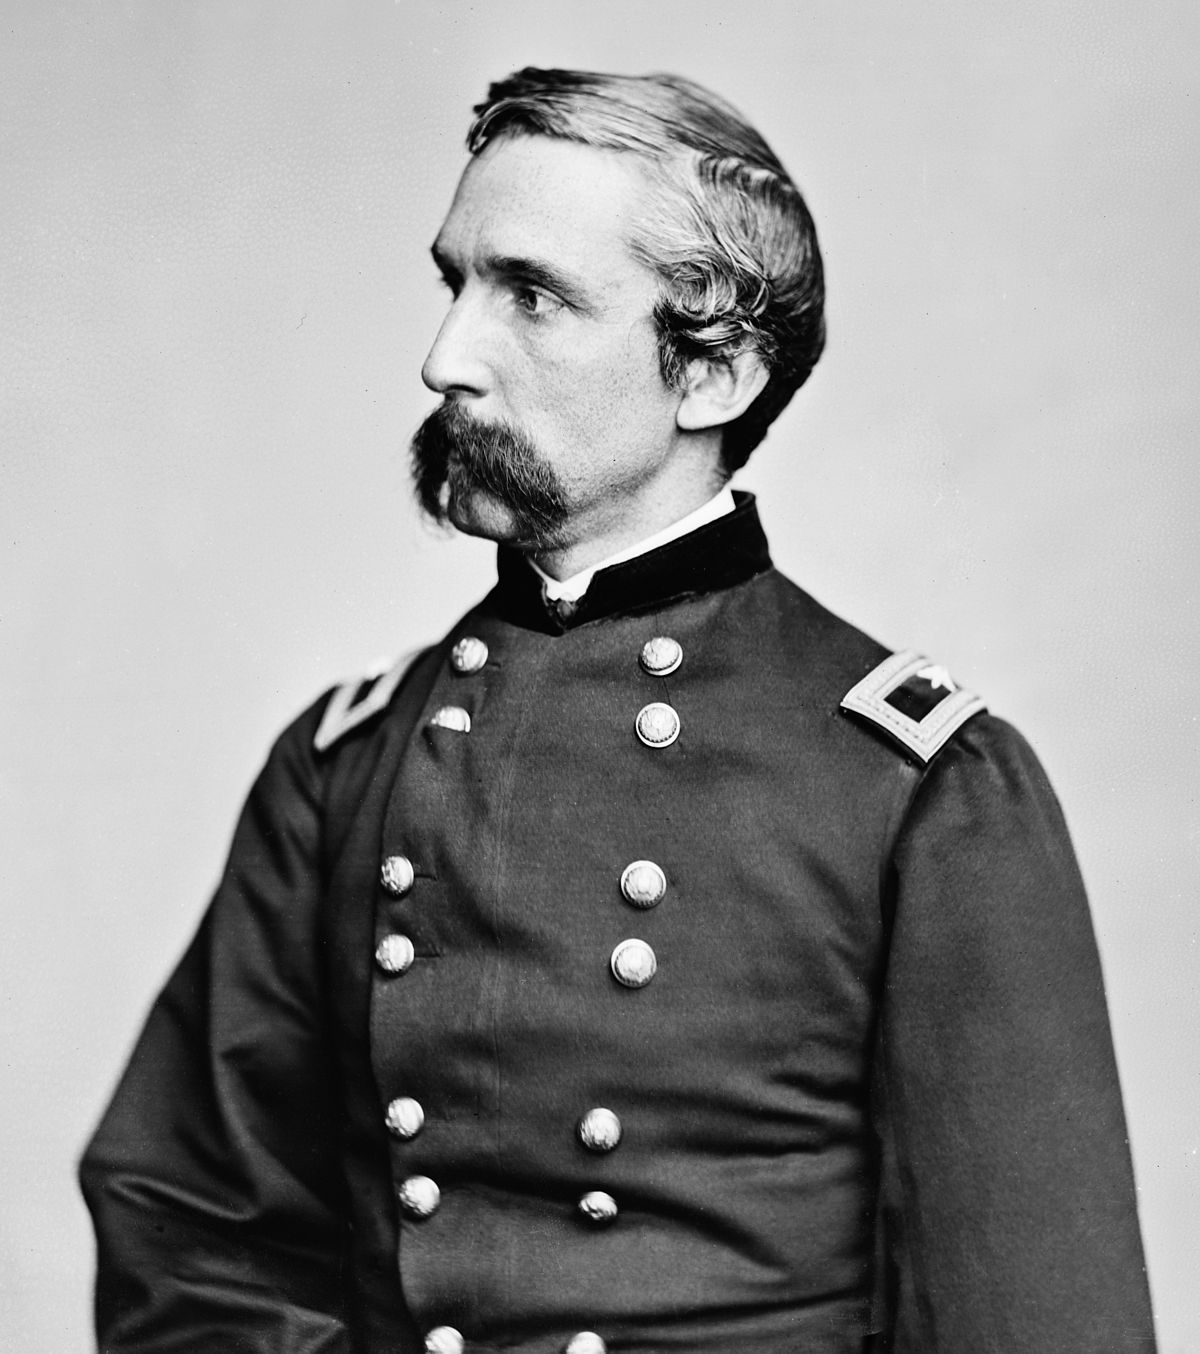 Joshua Chamberlain Wikipedia - If celebrities were 19th century military generals they would look like this